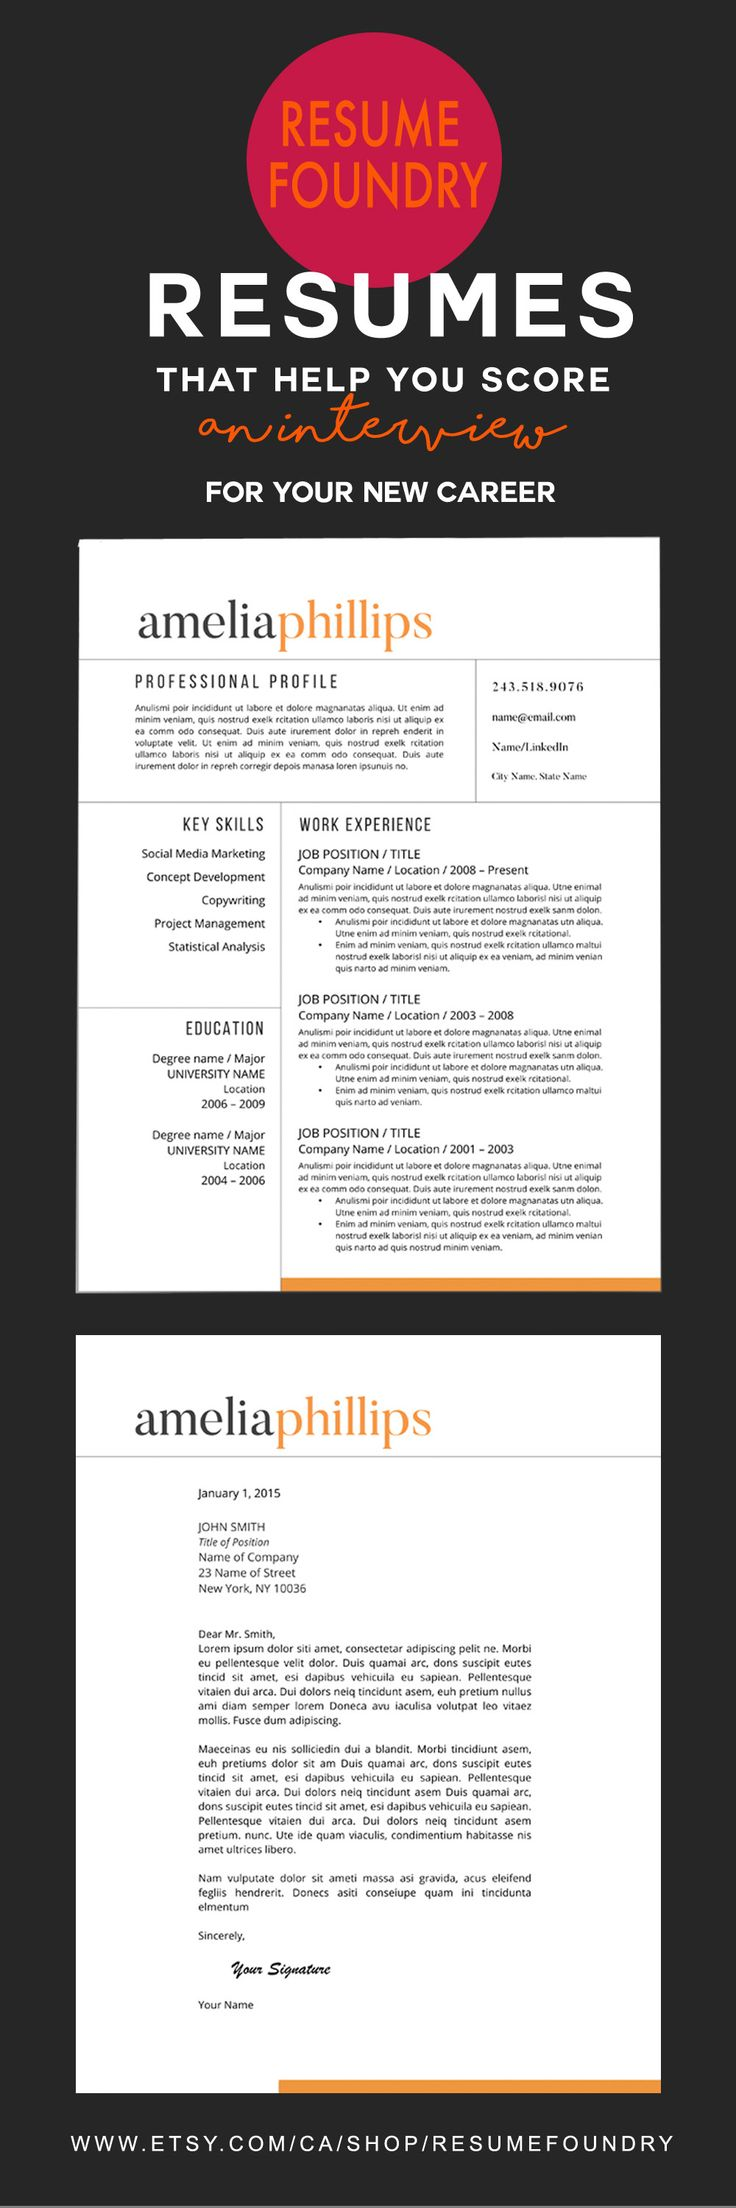 best ideas about professional resume examples a professional resume template a zing of color to catch the recruiters eye only